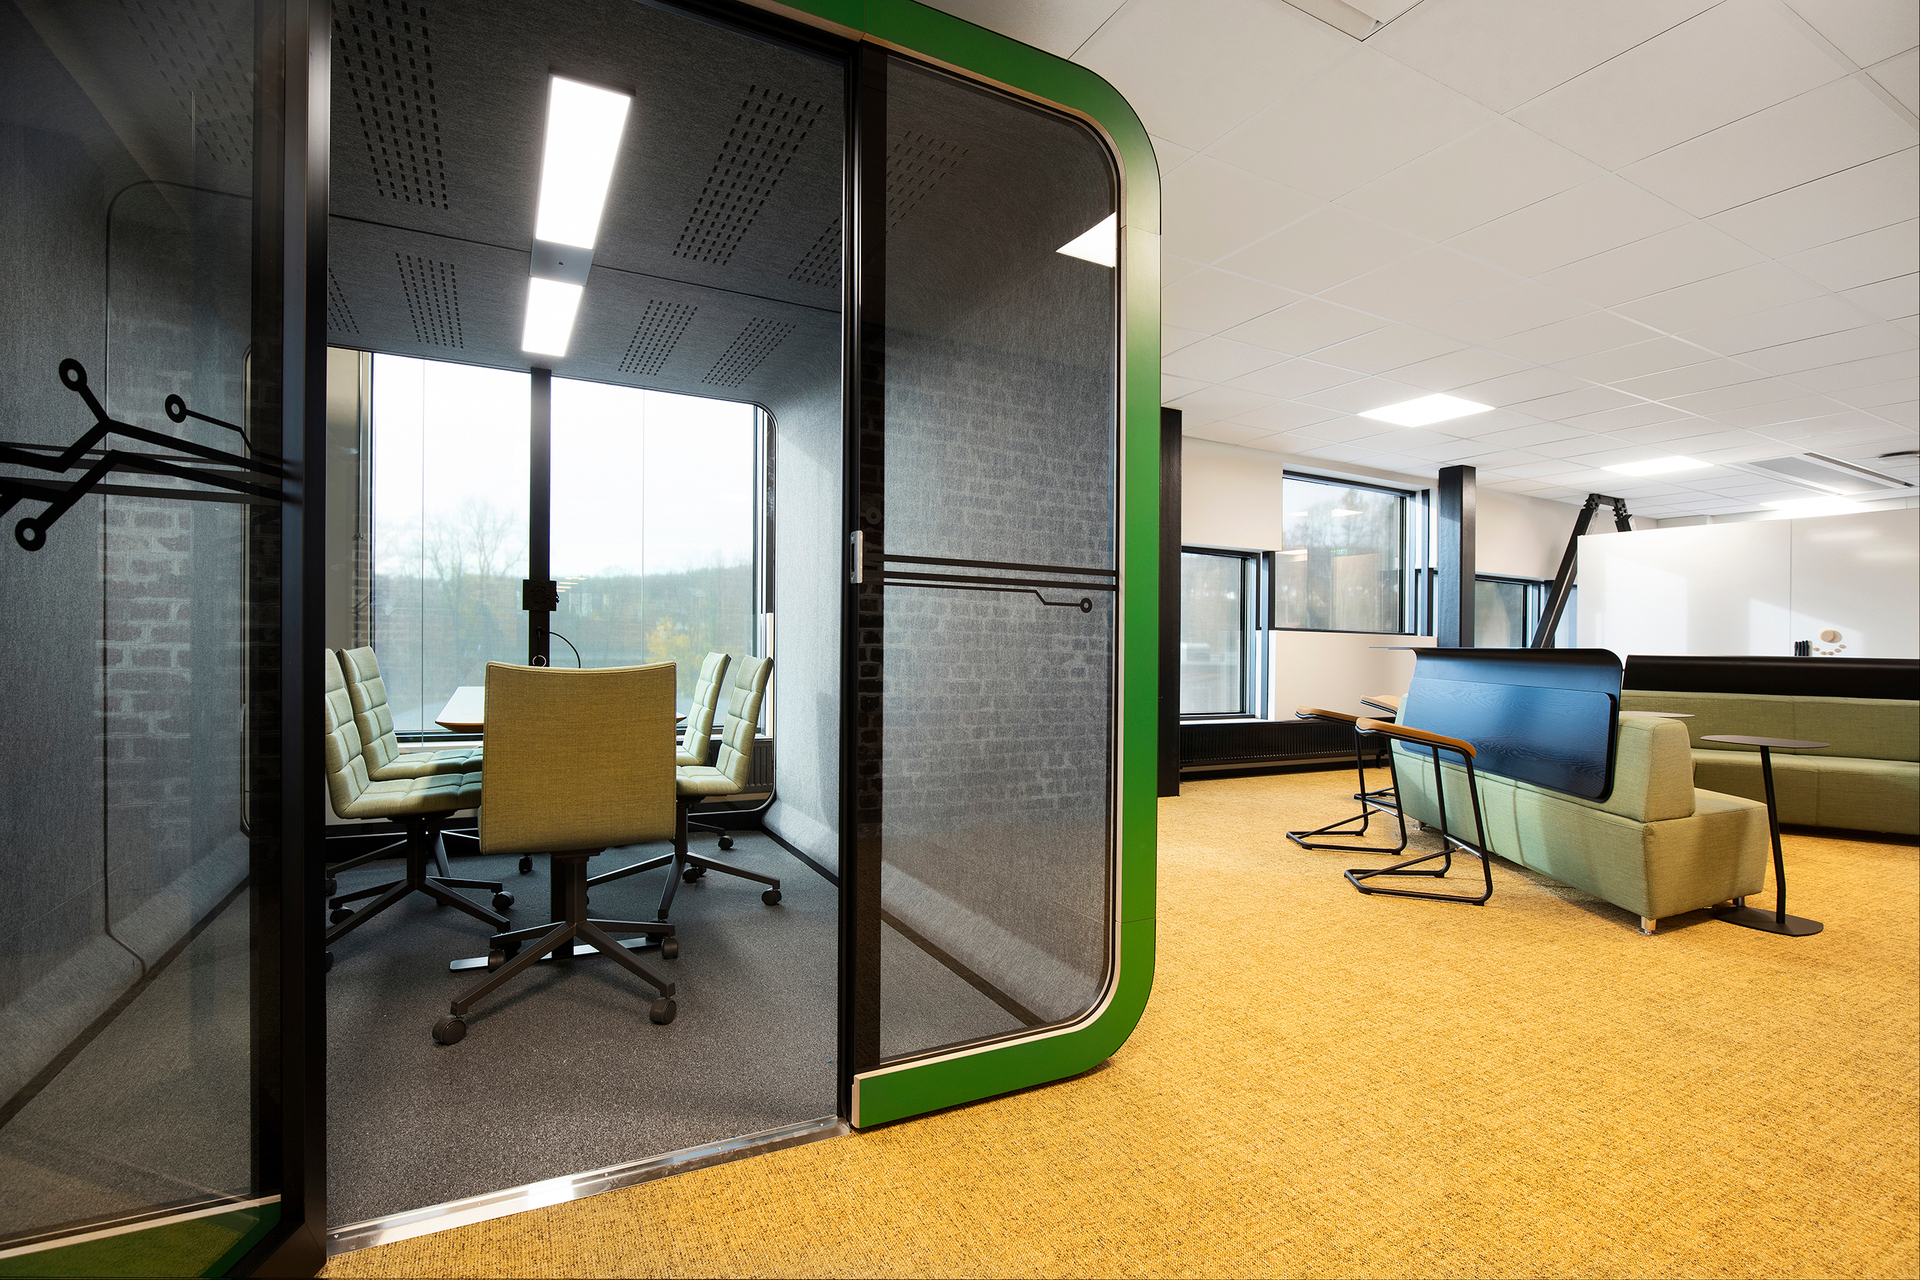 The Framery 2Q meeting booth is designed for 4-6 people. It's the best place to co-create, brainstorm and have meetings.